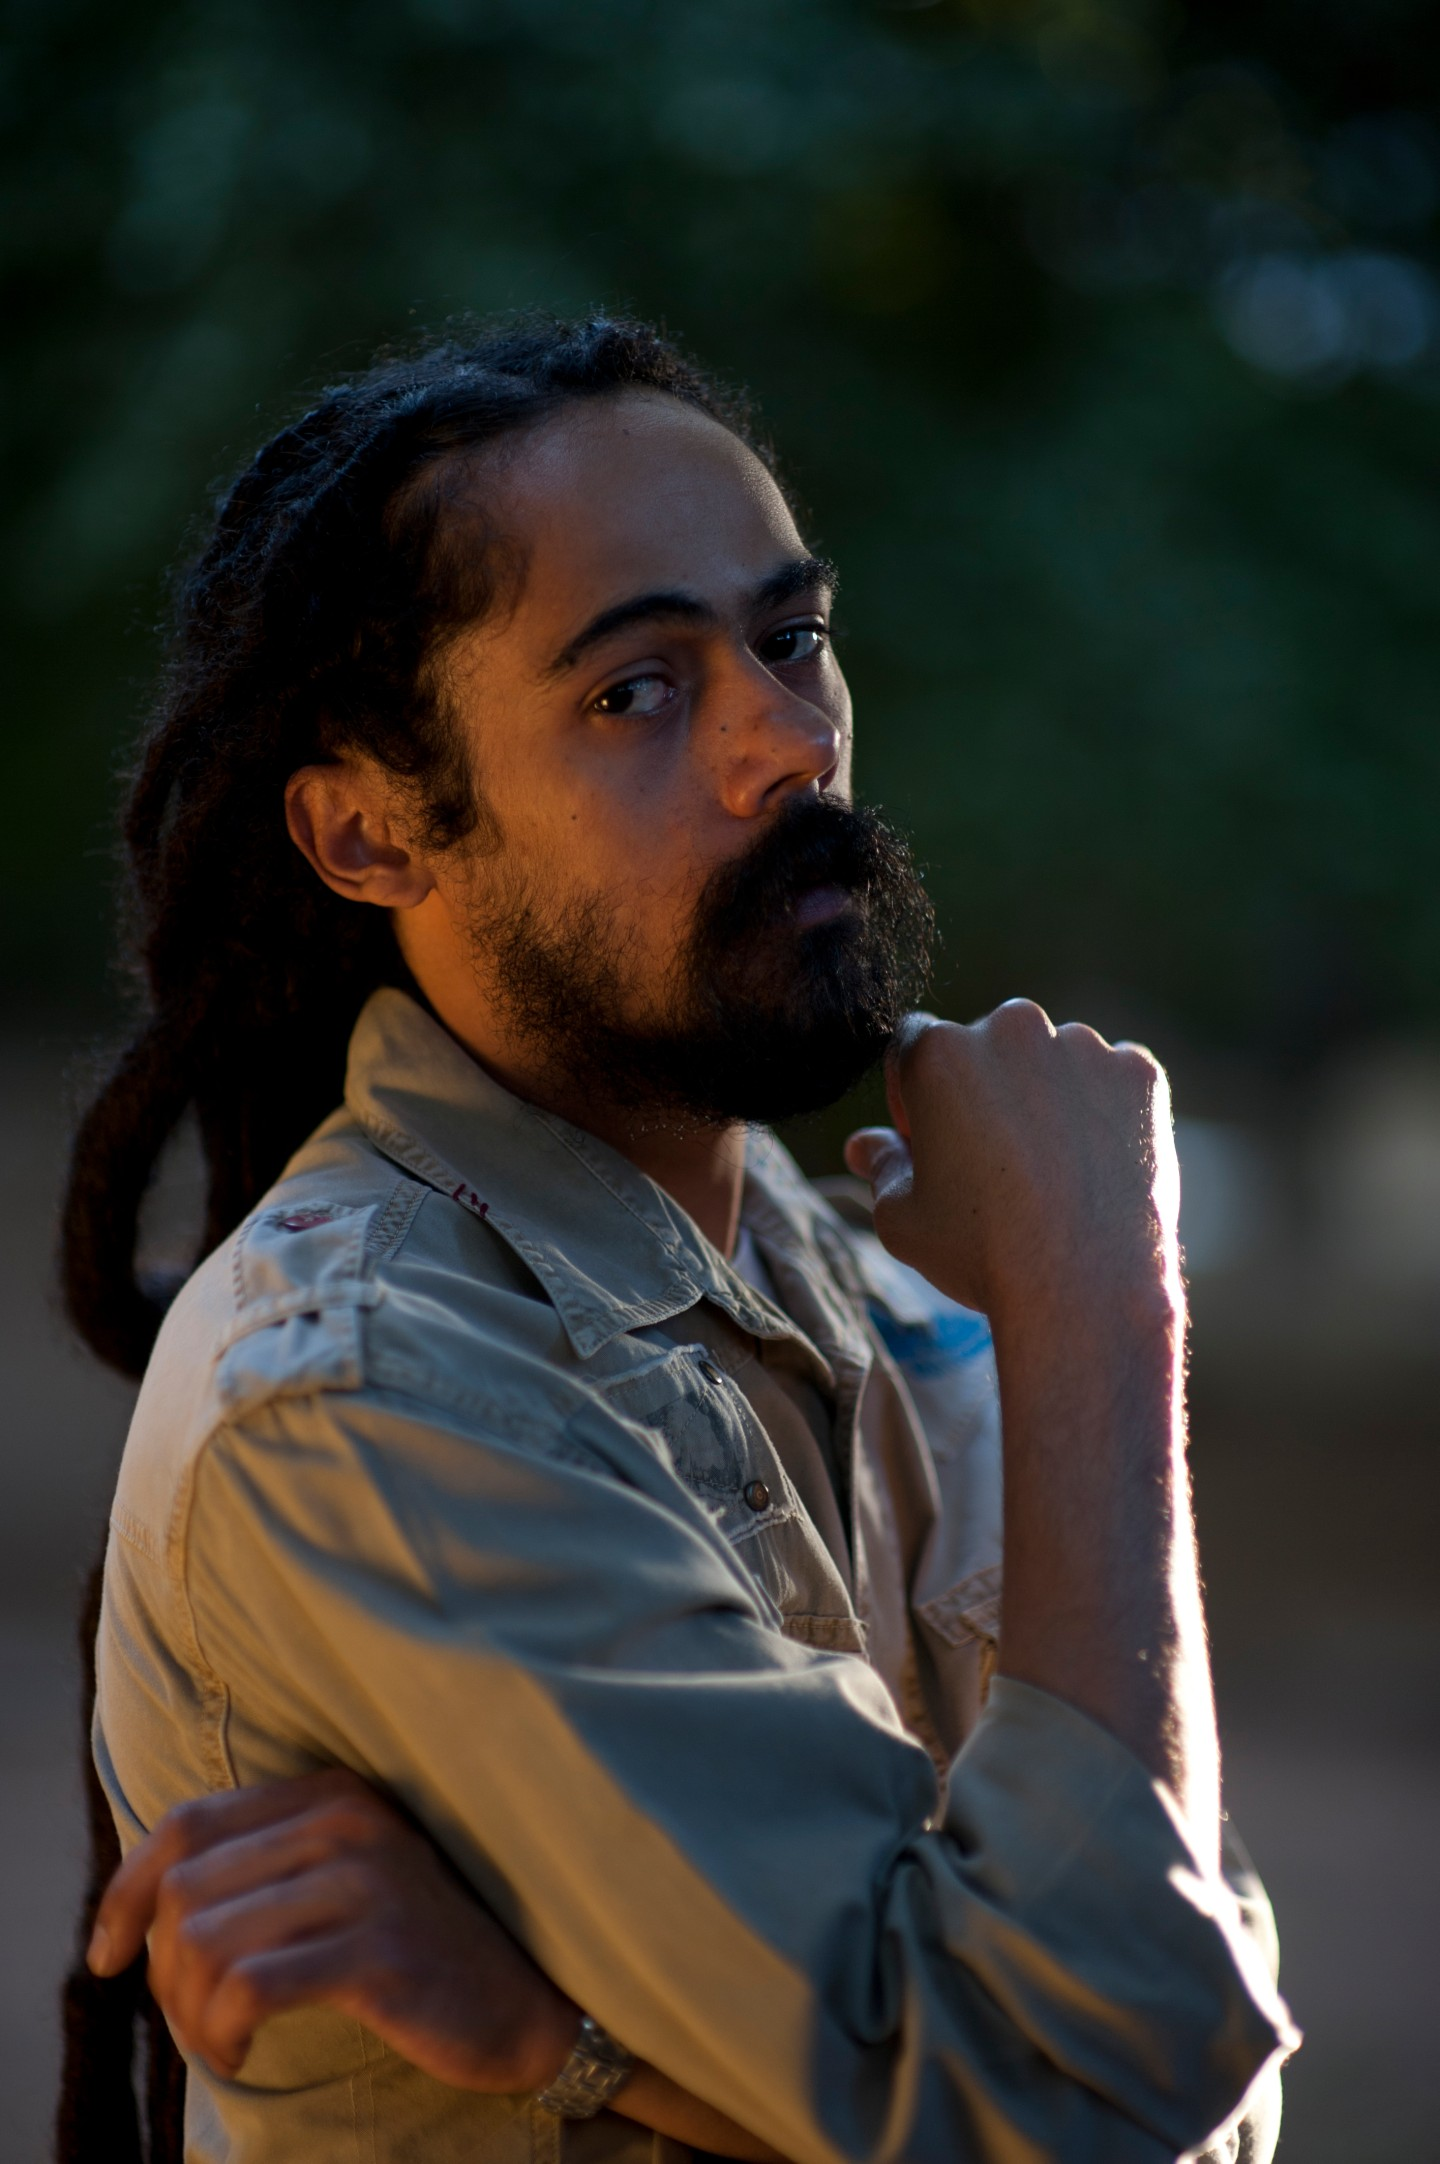 Damian marley shares roar video details upcoming stony hill damian marley shares roar video details upcoming istony hill thecheapjerseys Choice Image